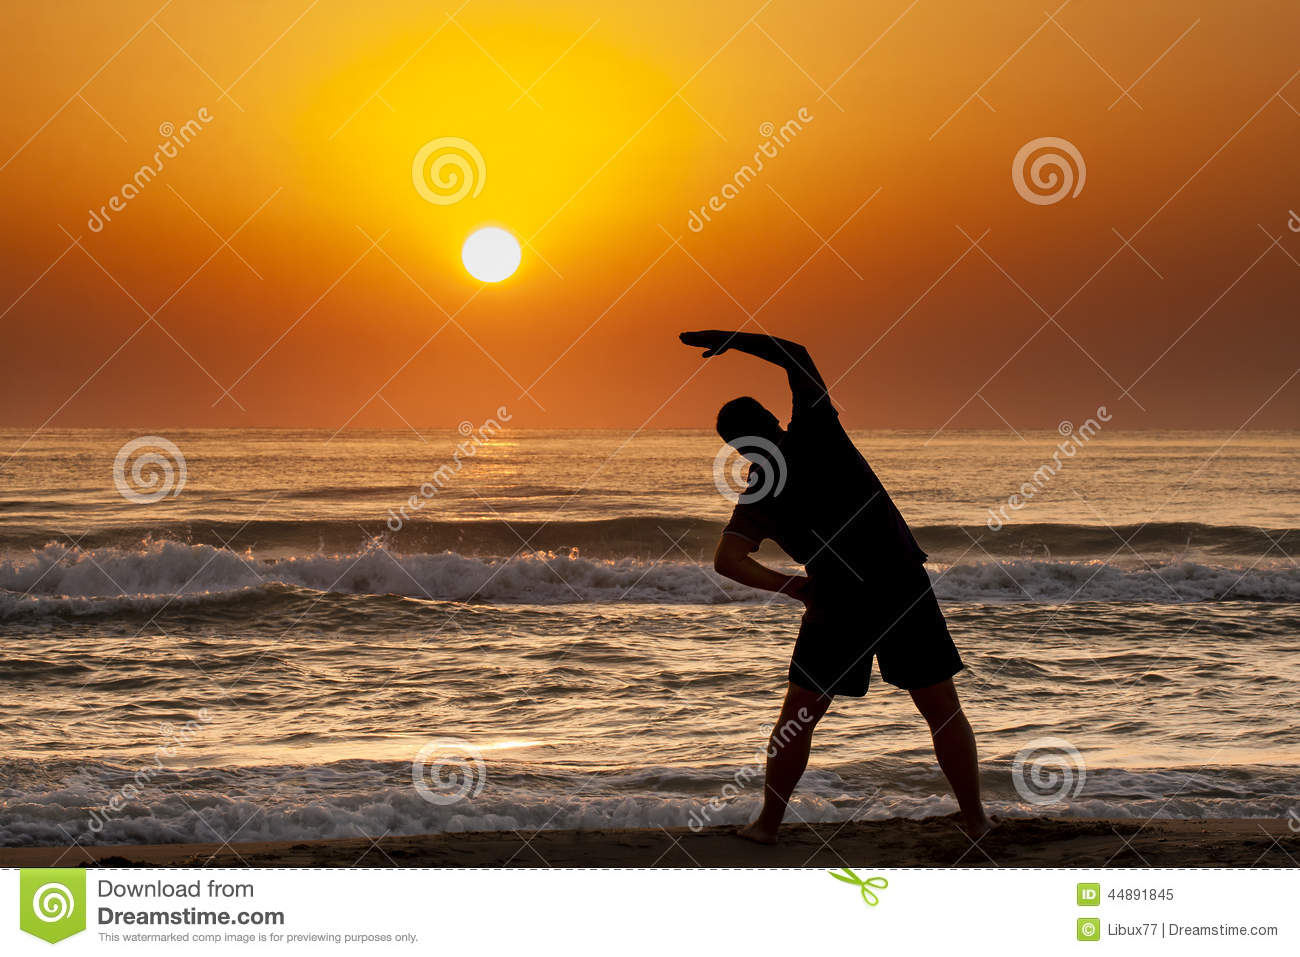 Sunrise beach fitness